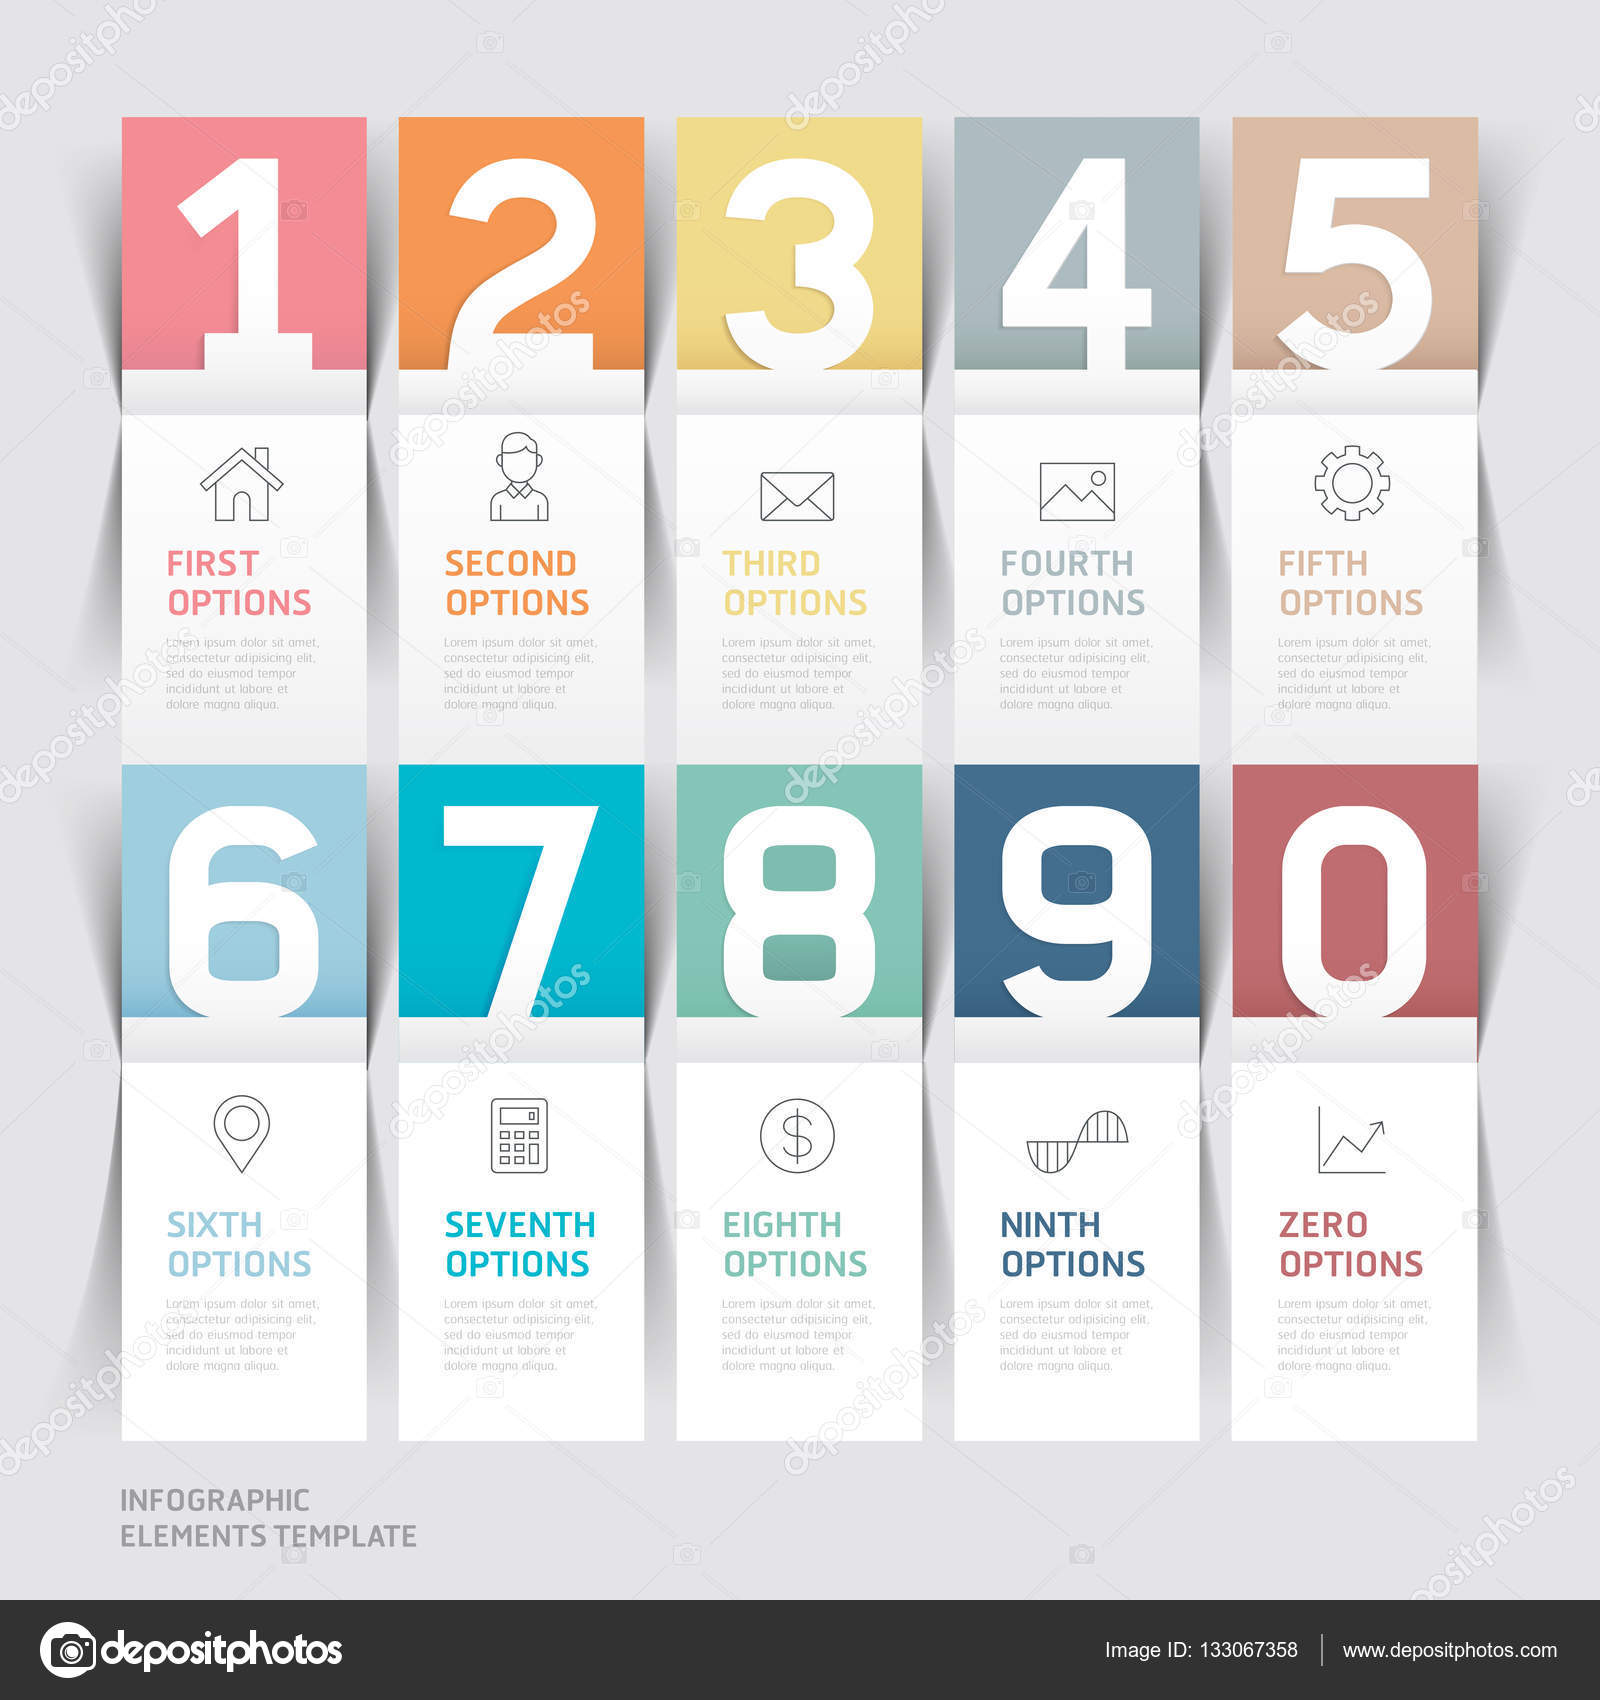 Business brochures template paper folding style stock vector business brochures template paper folding style vector illustration can be used for workflow layout diagram number options web design infographics and wajeb Gallery